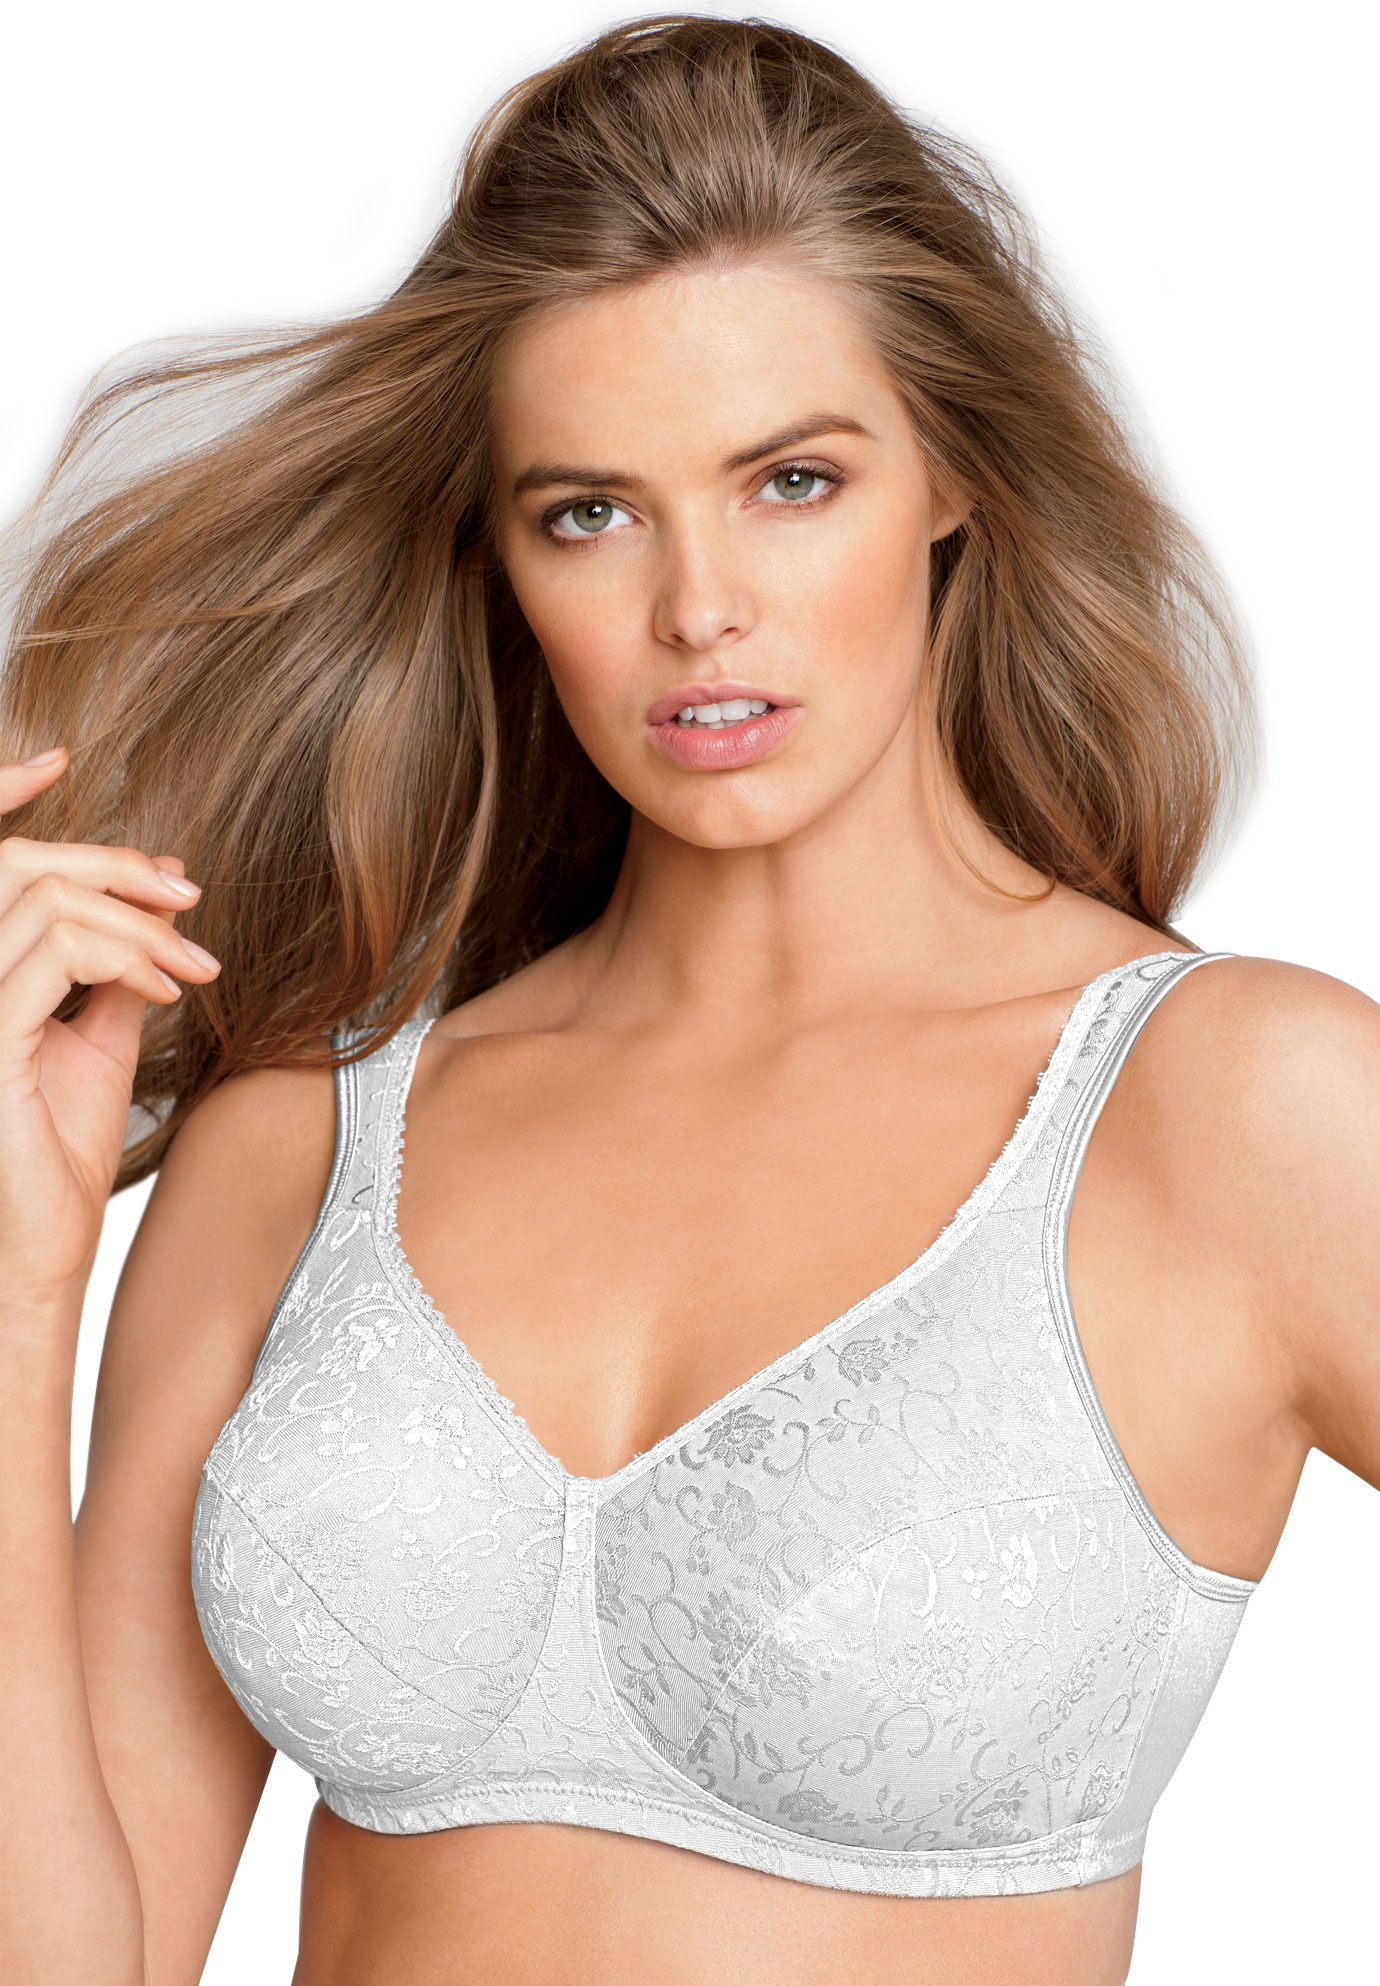 18-Hour soft cup floral patterned bra by Playtex®, WHITE, hi-res